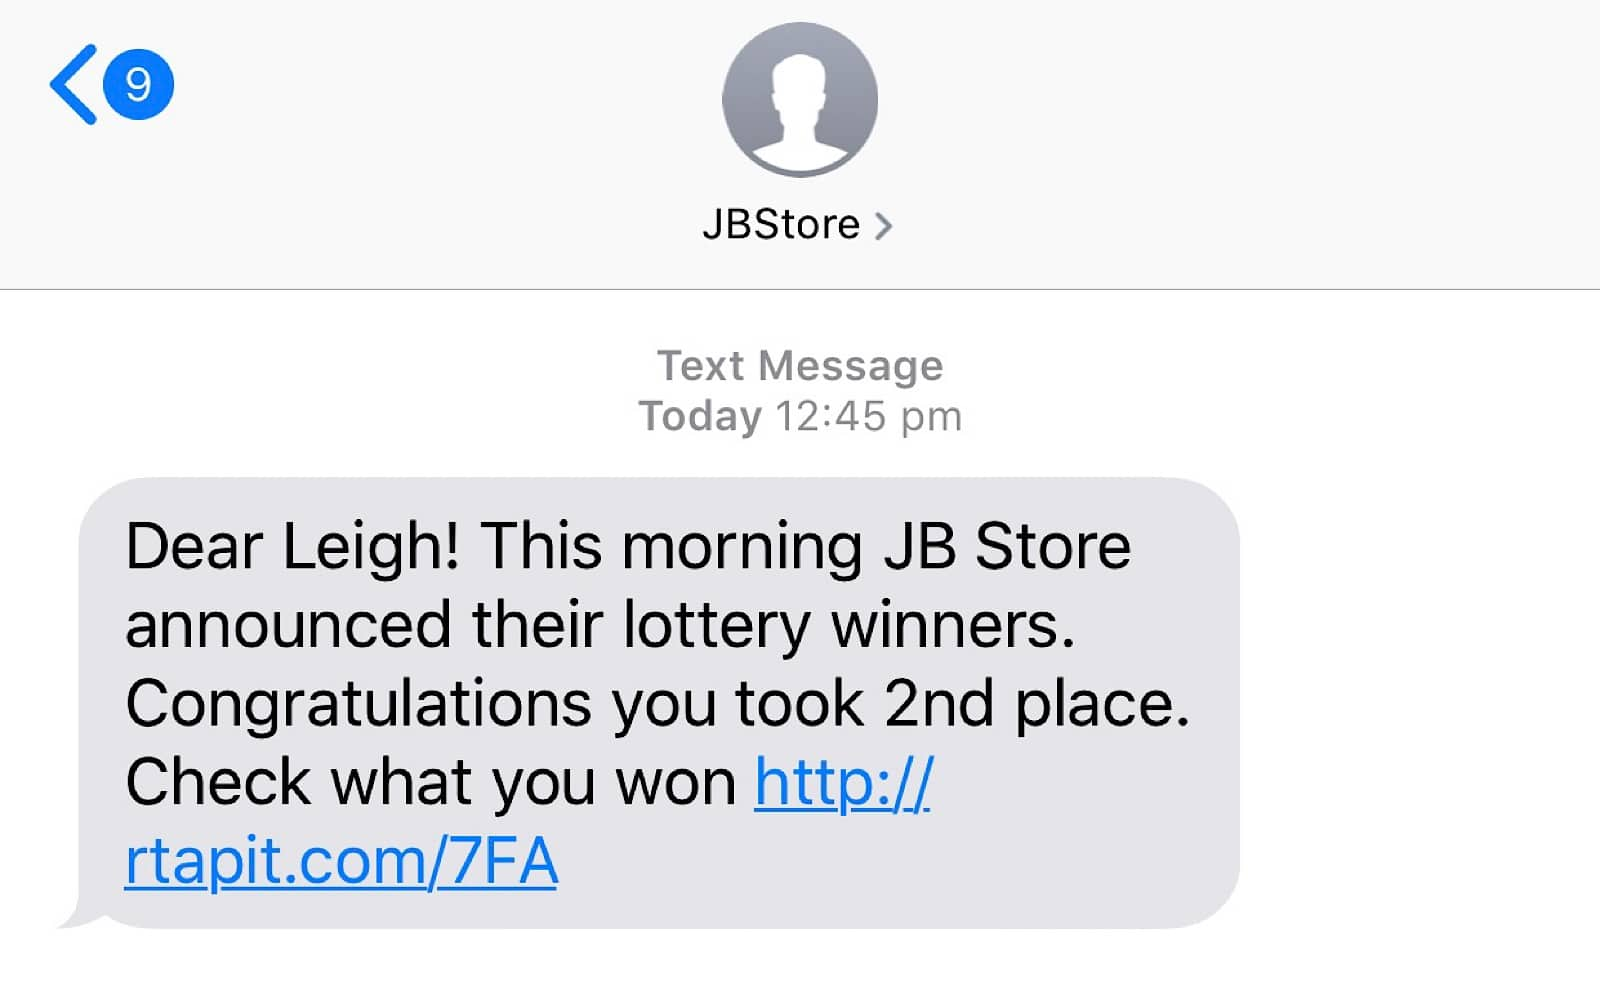 Is this SMS real? – Pickr